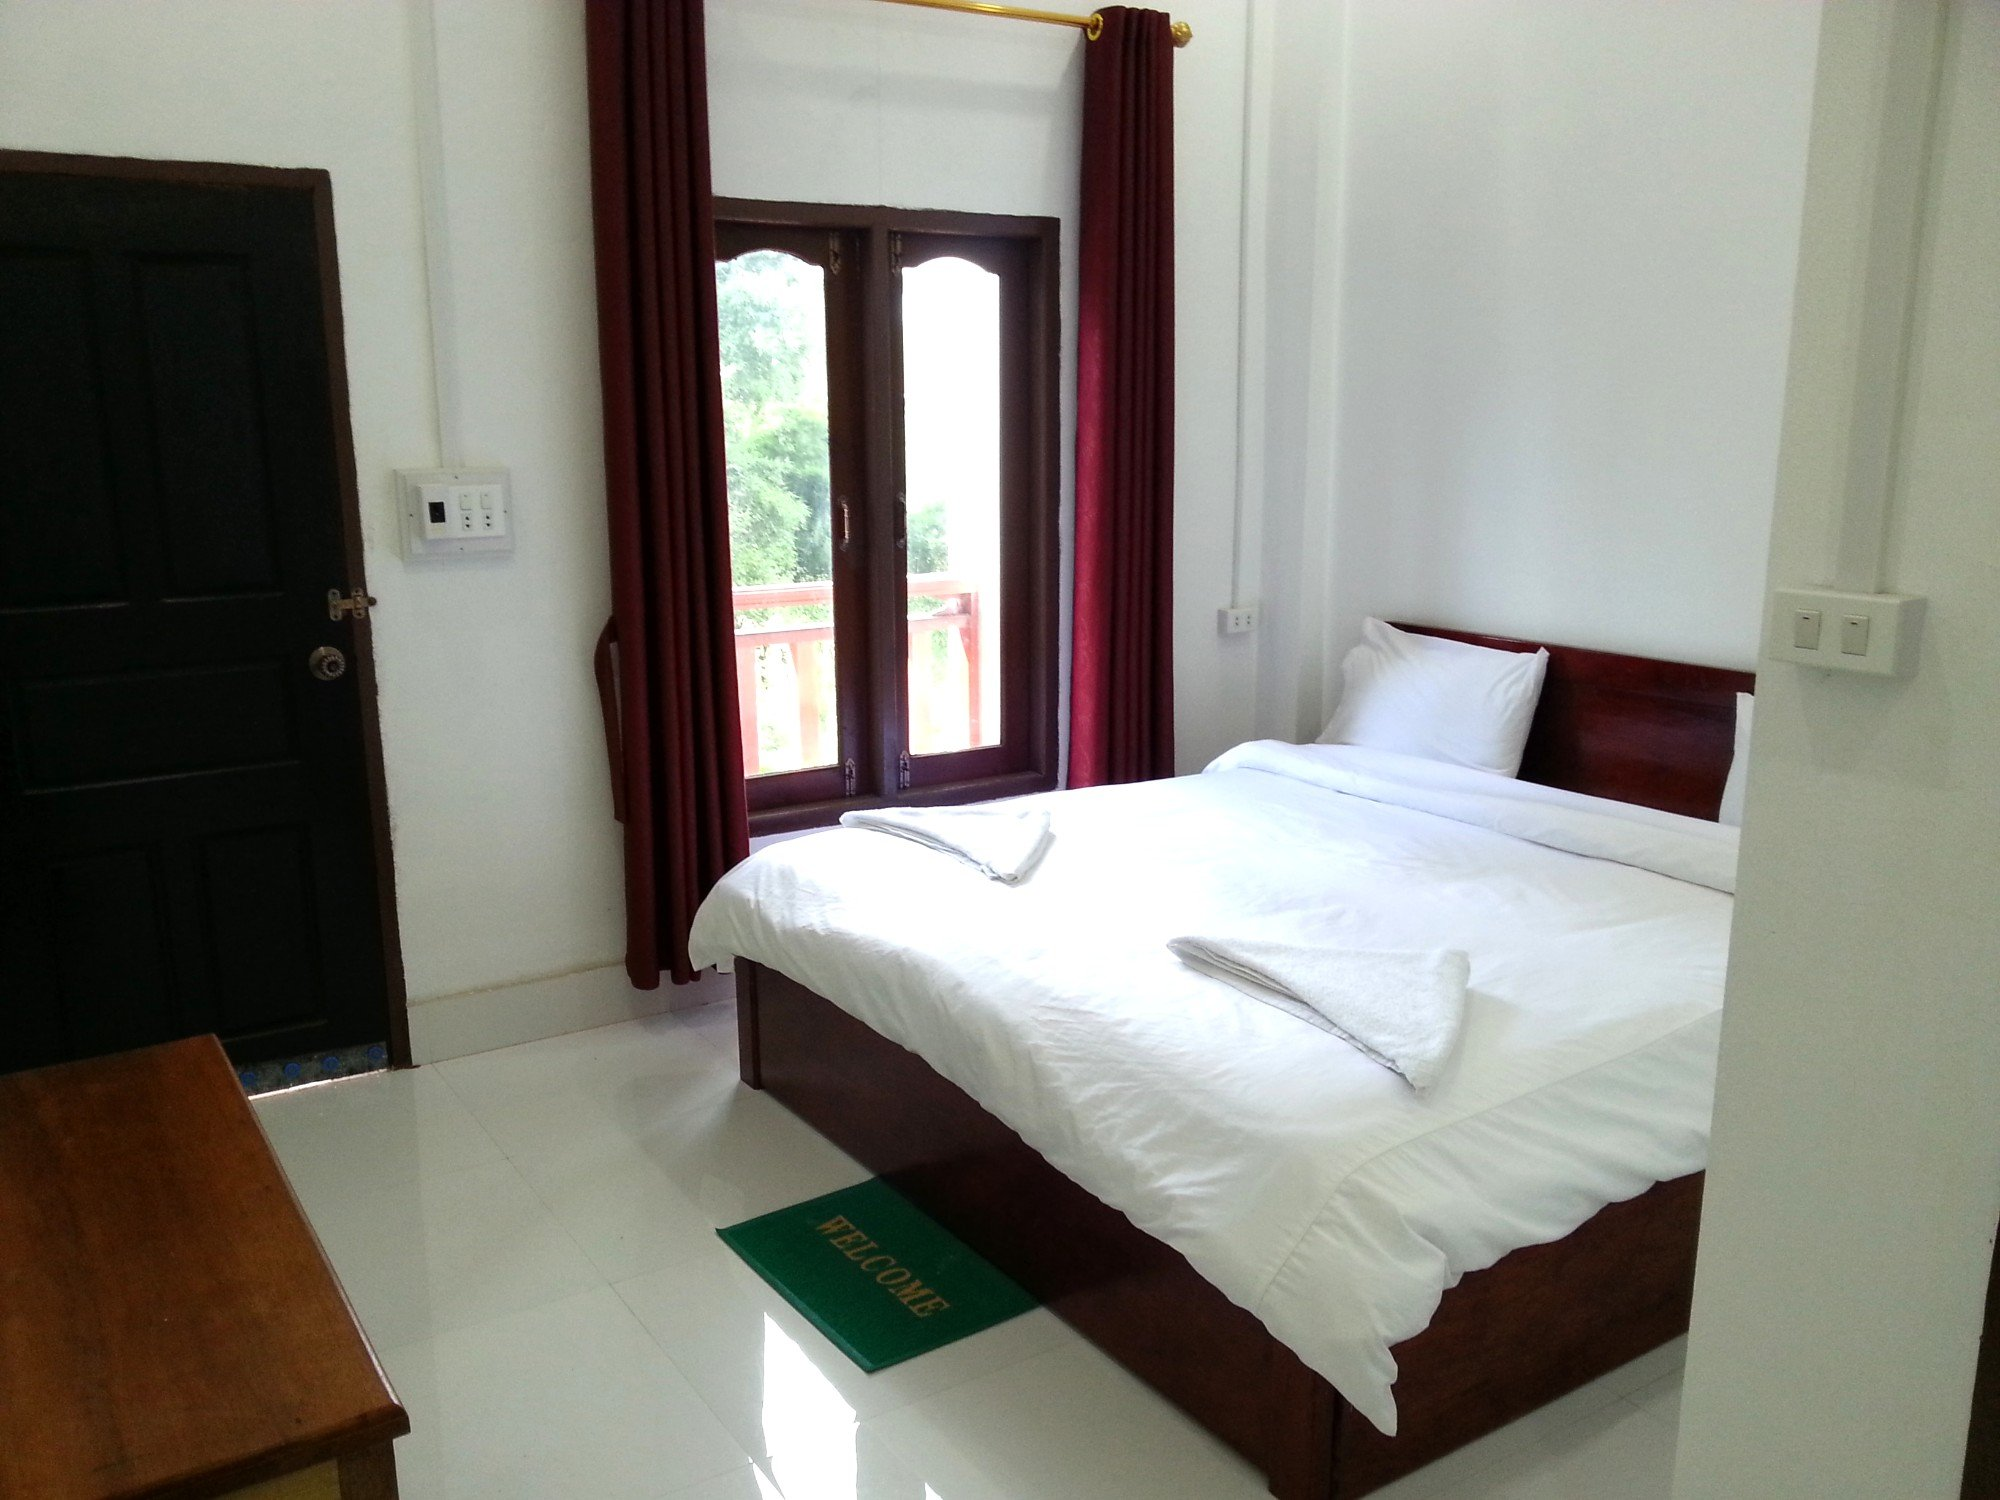 Bedroom at Sipanya Guesthouse